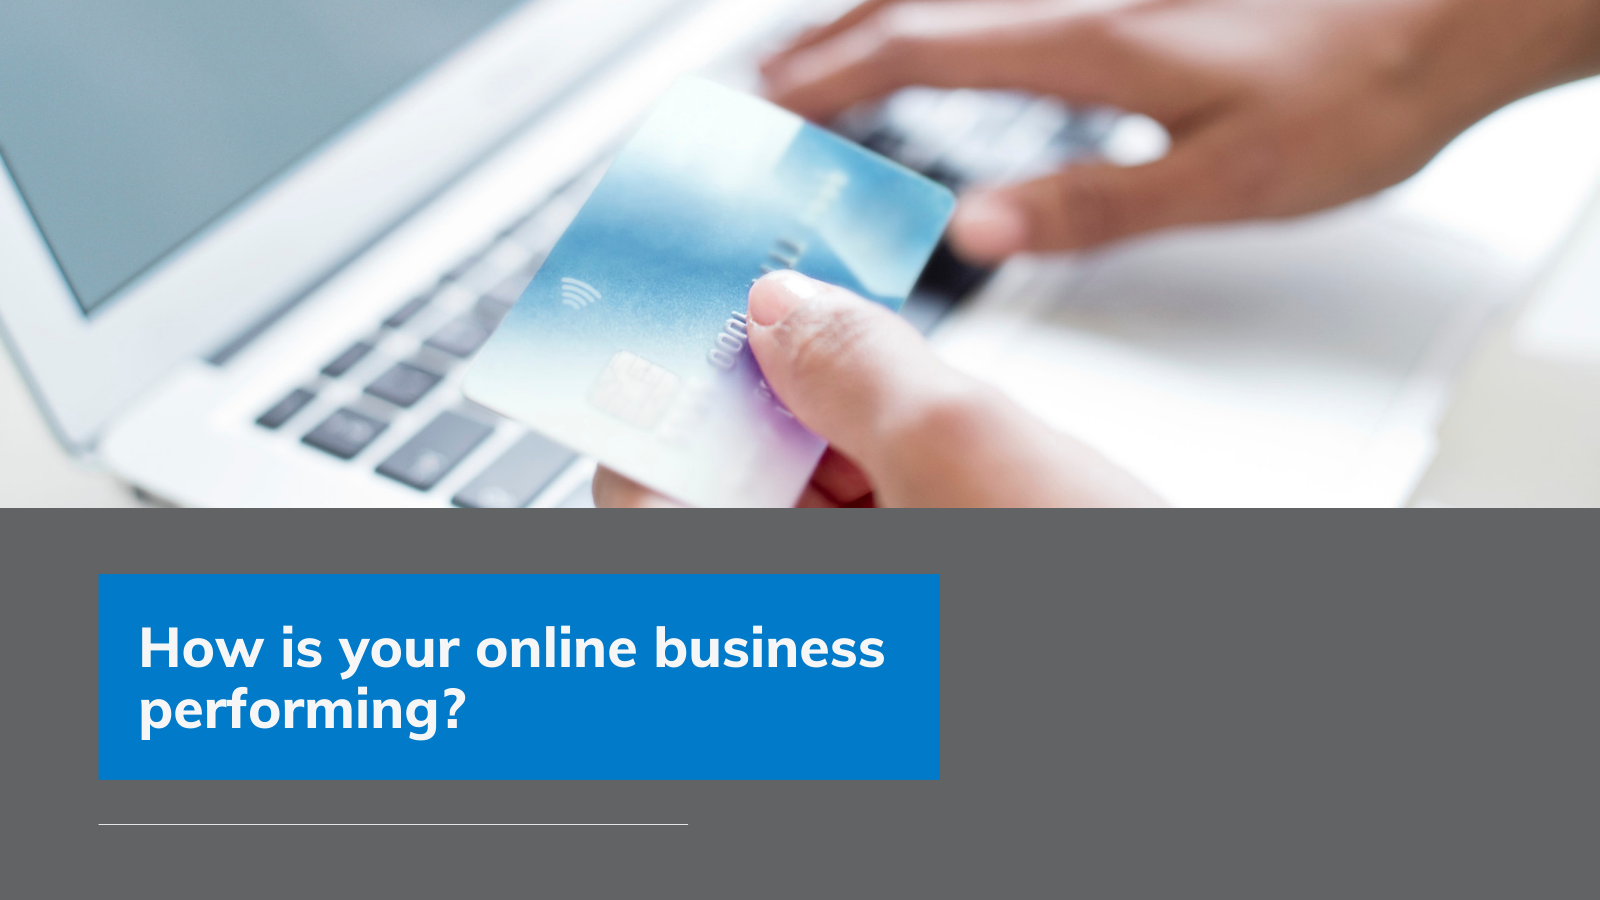 Online Business - How is Your Online Business Performing?